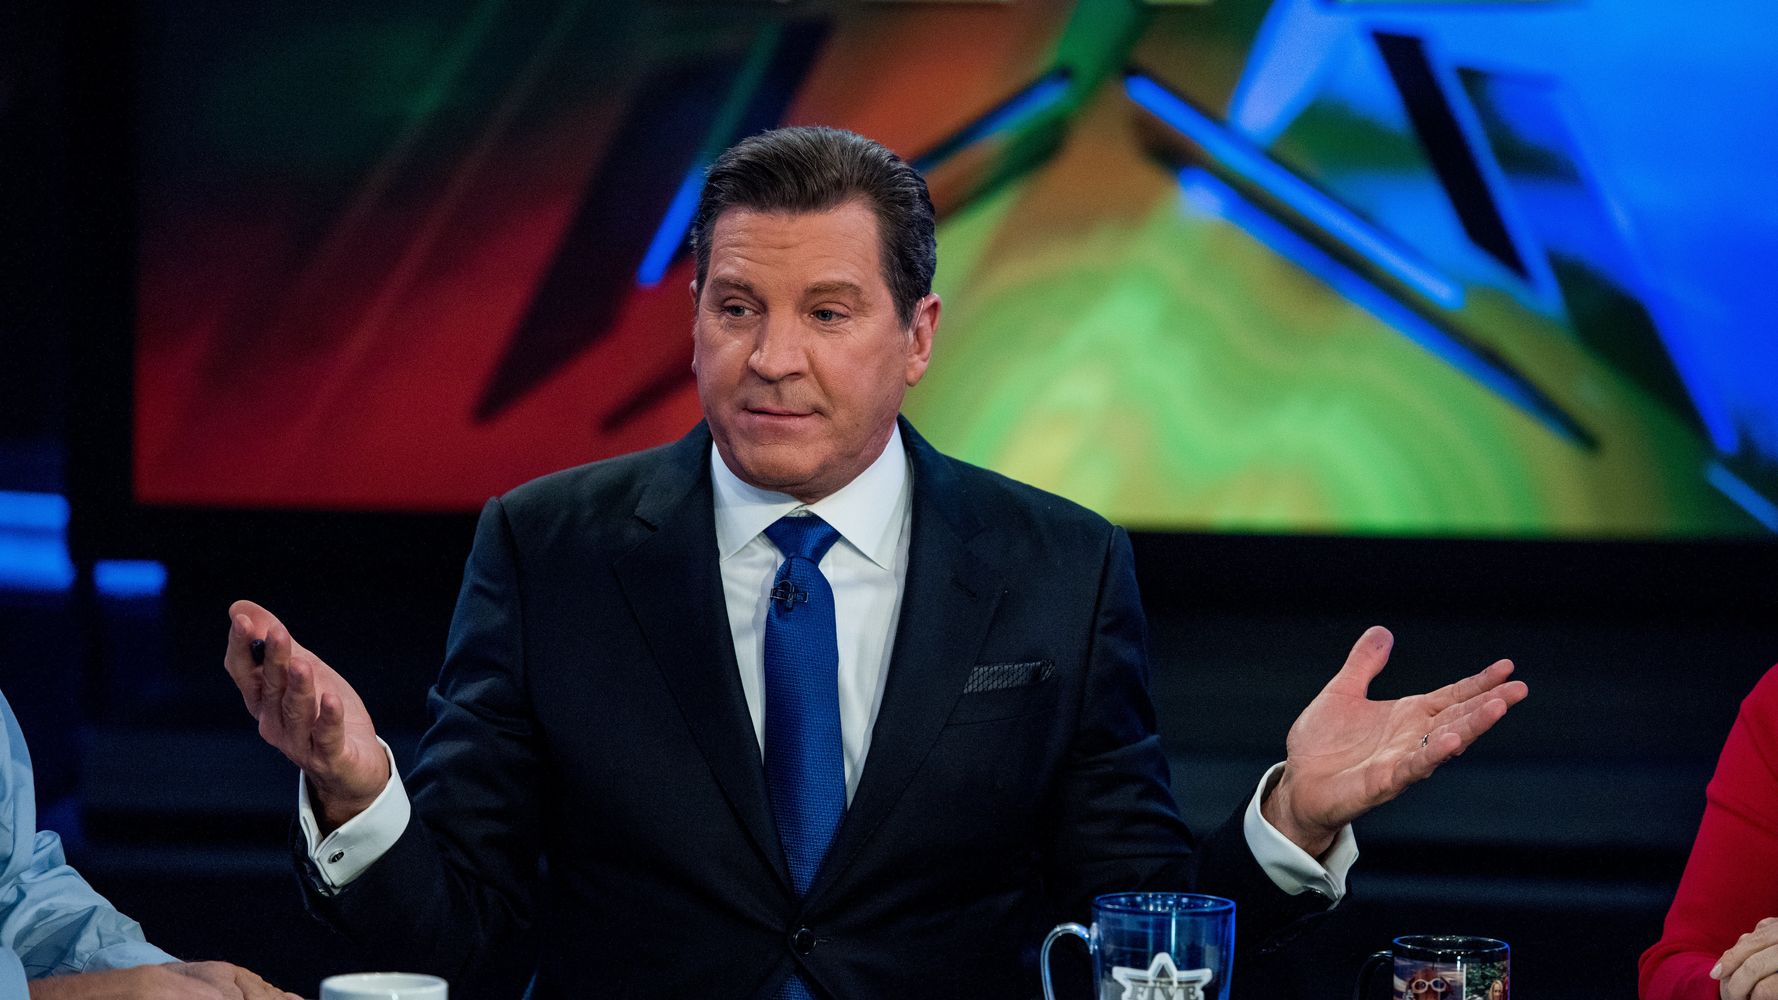 Fox News Host Sent Unsolicited Lewd Text Messages To Colleagues